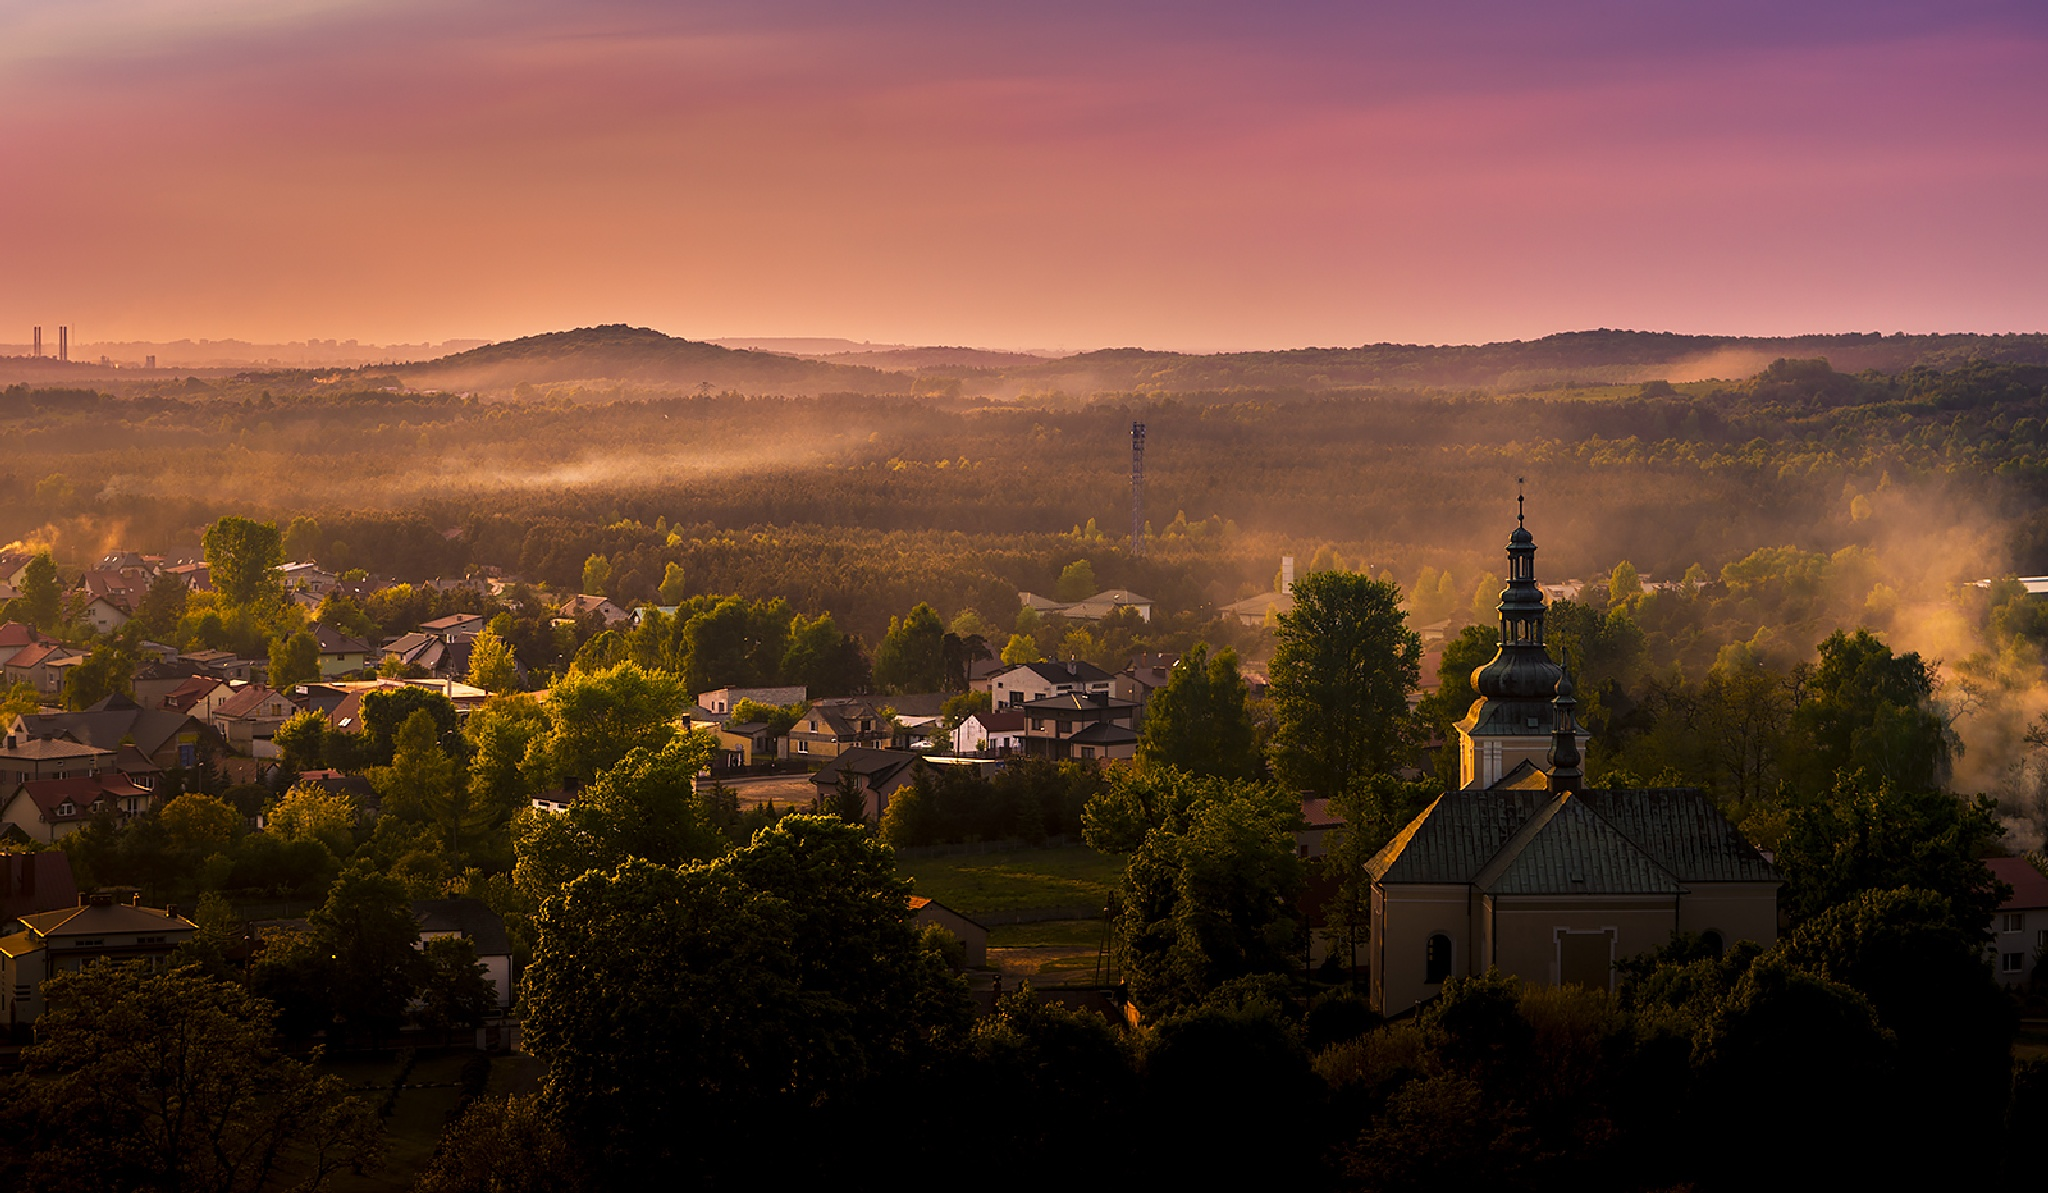 Sunset over village. by jacula